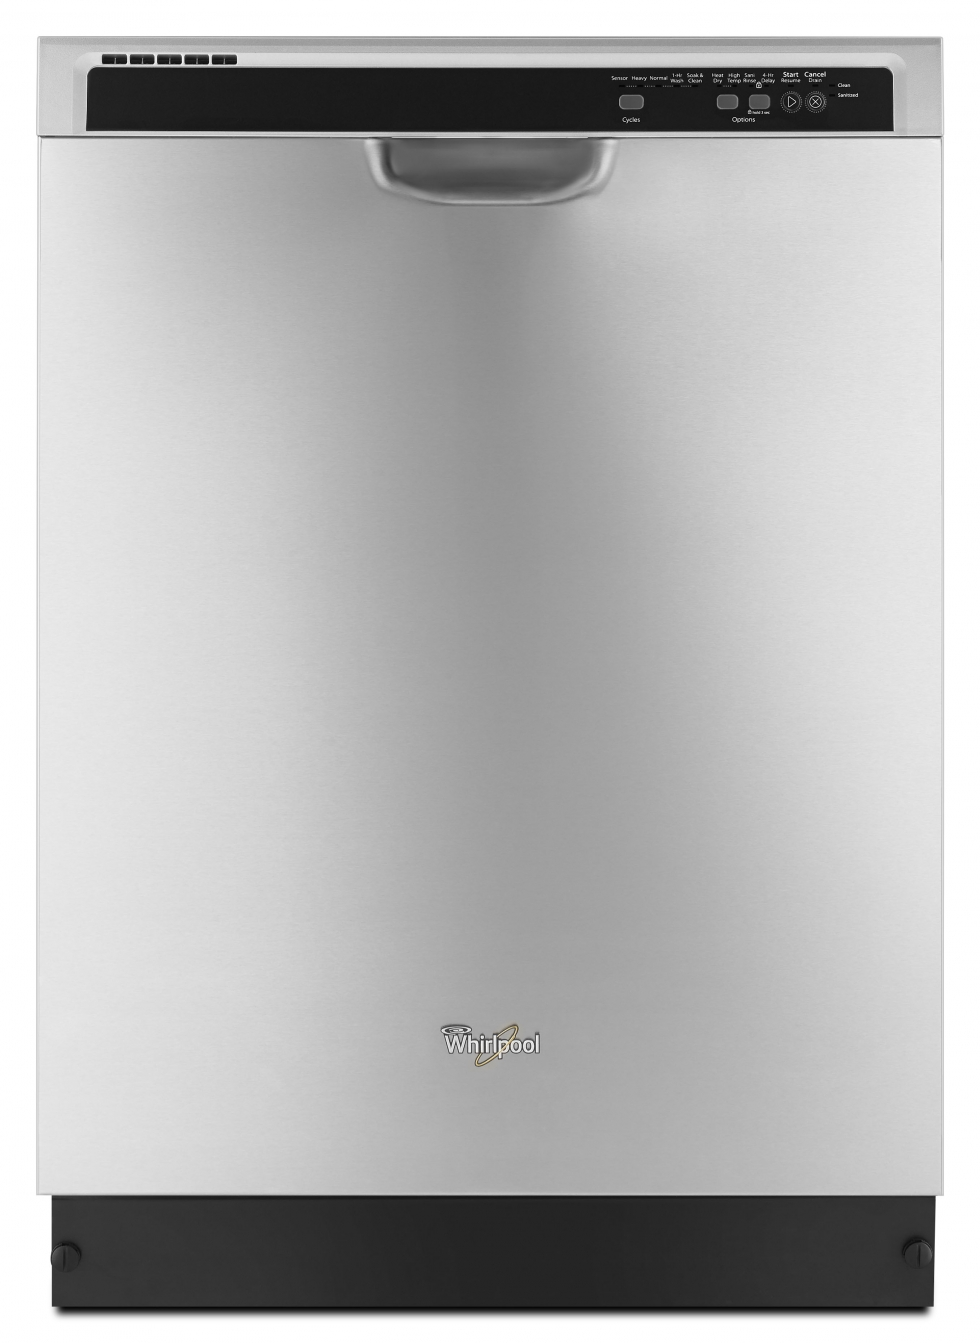 Whirlpool Dishwasher with Sensor Cycle Stainless Steel